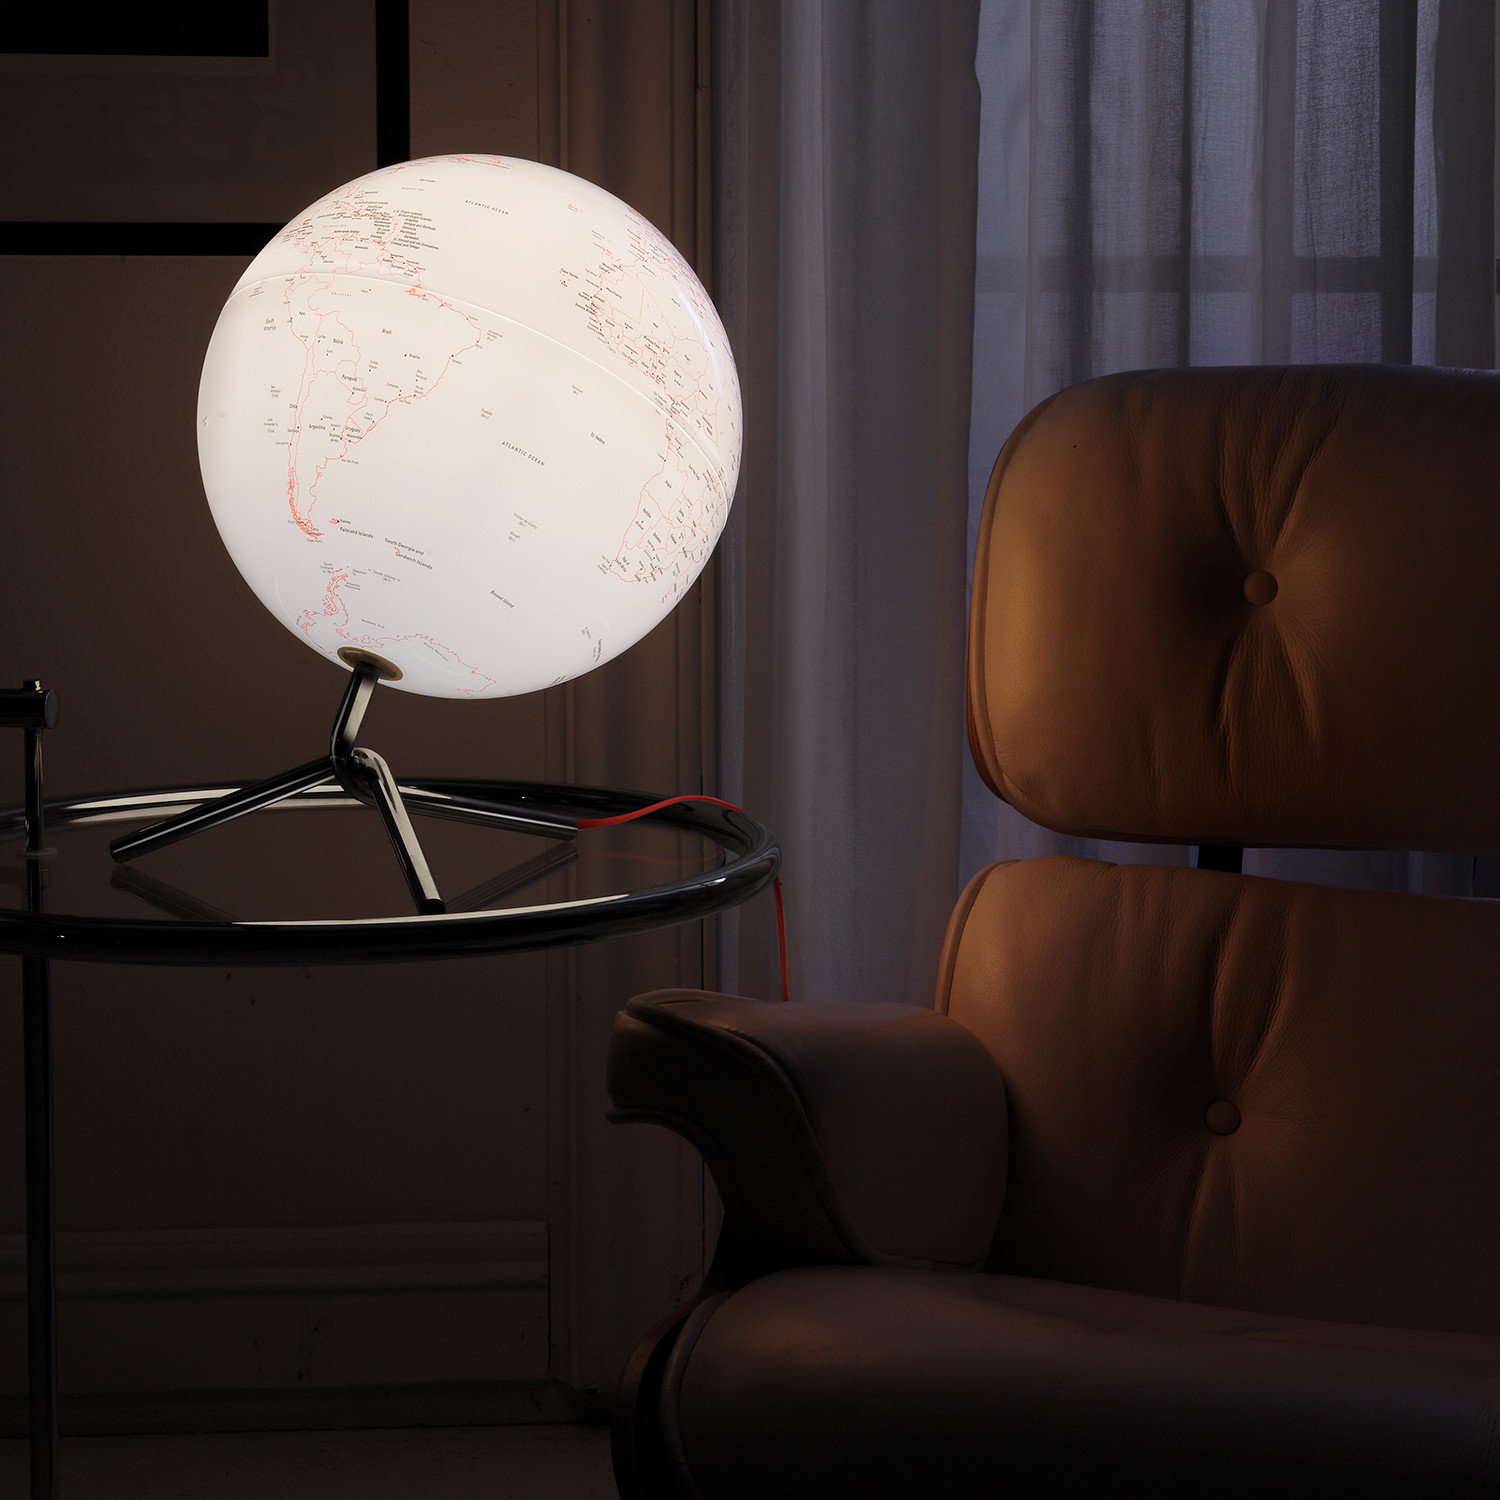 Nodo Illuminating Globe Atmosphere Globes Touch Of Modern